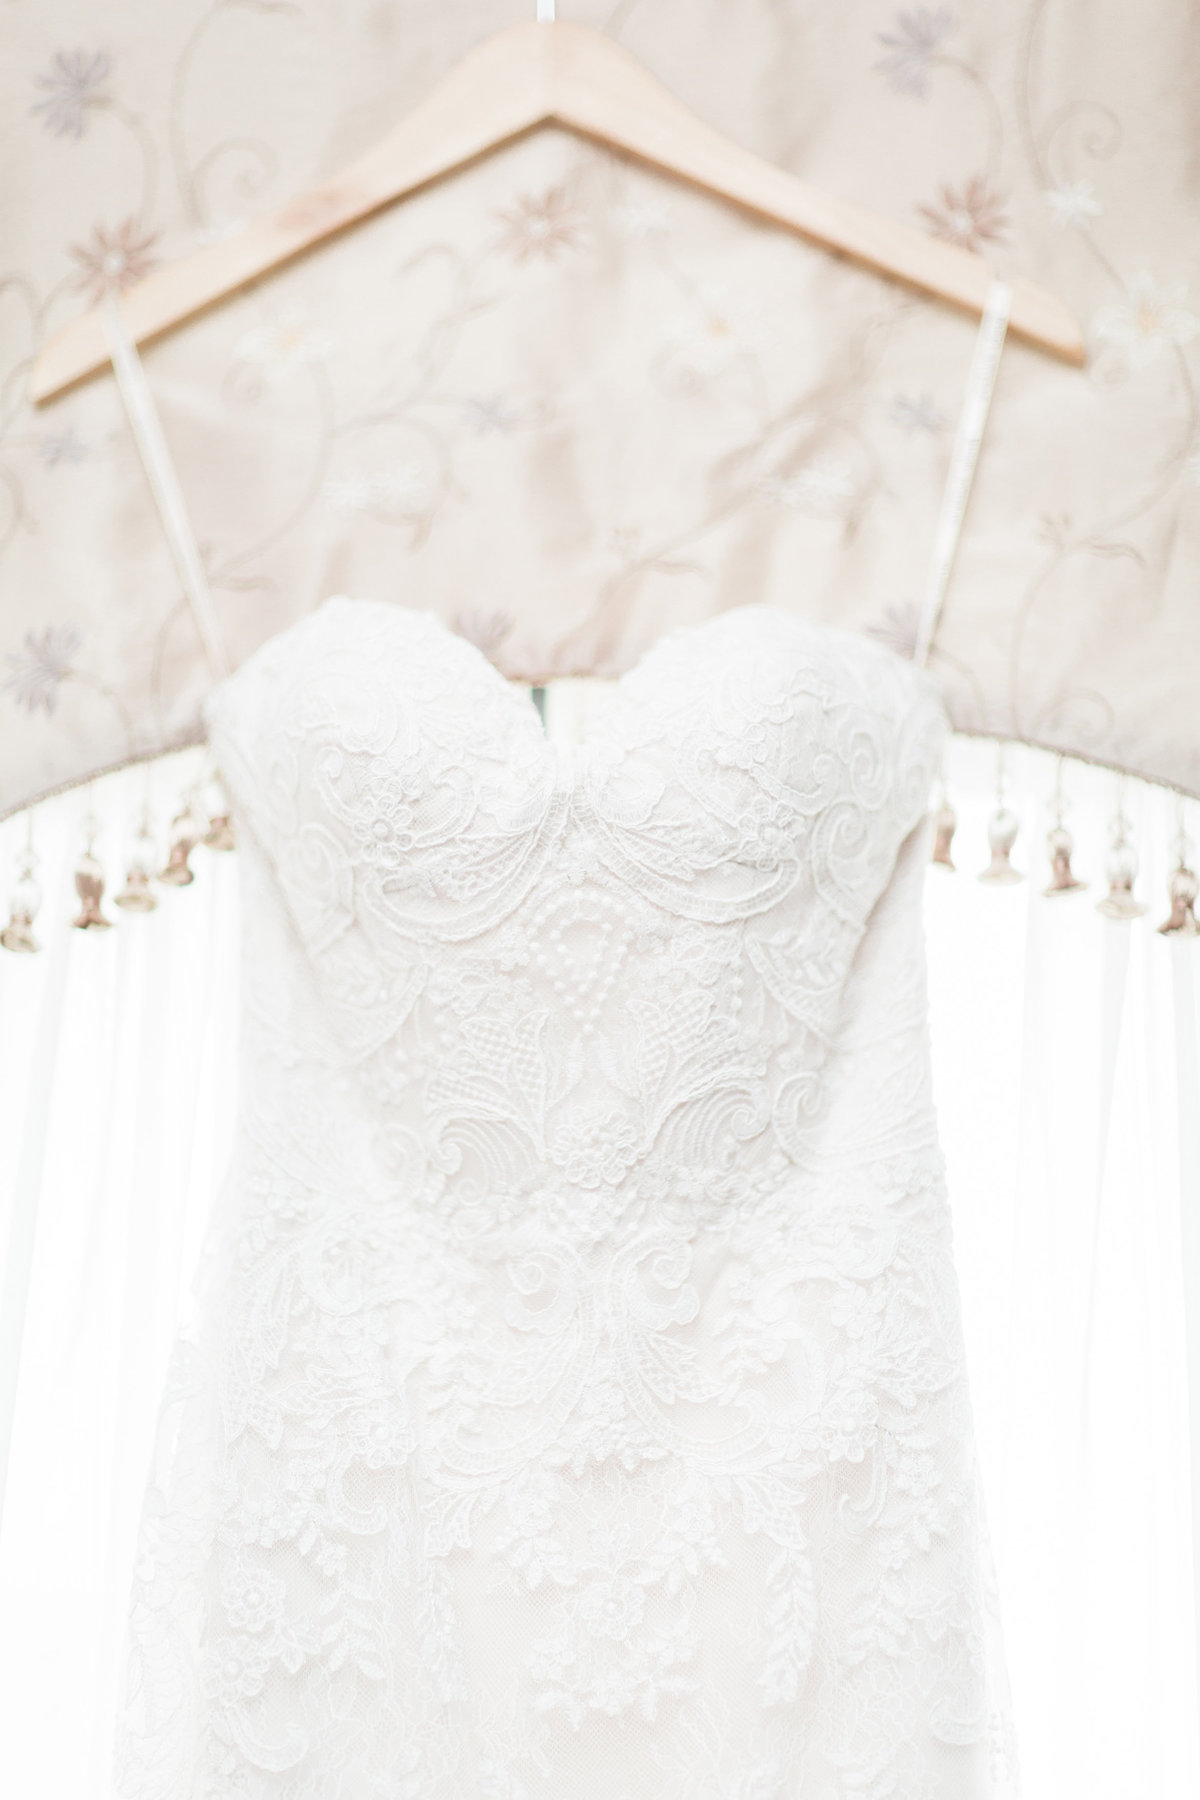 Ardmore Convention Center Wedding Dress